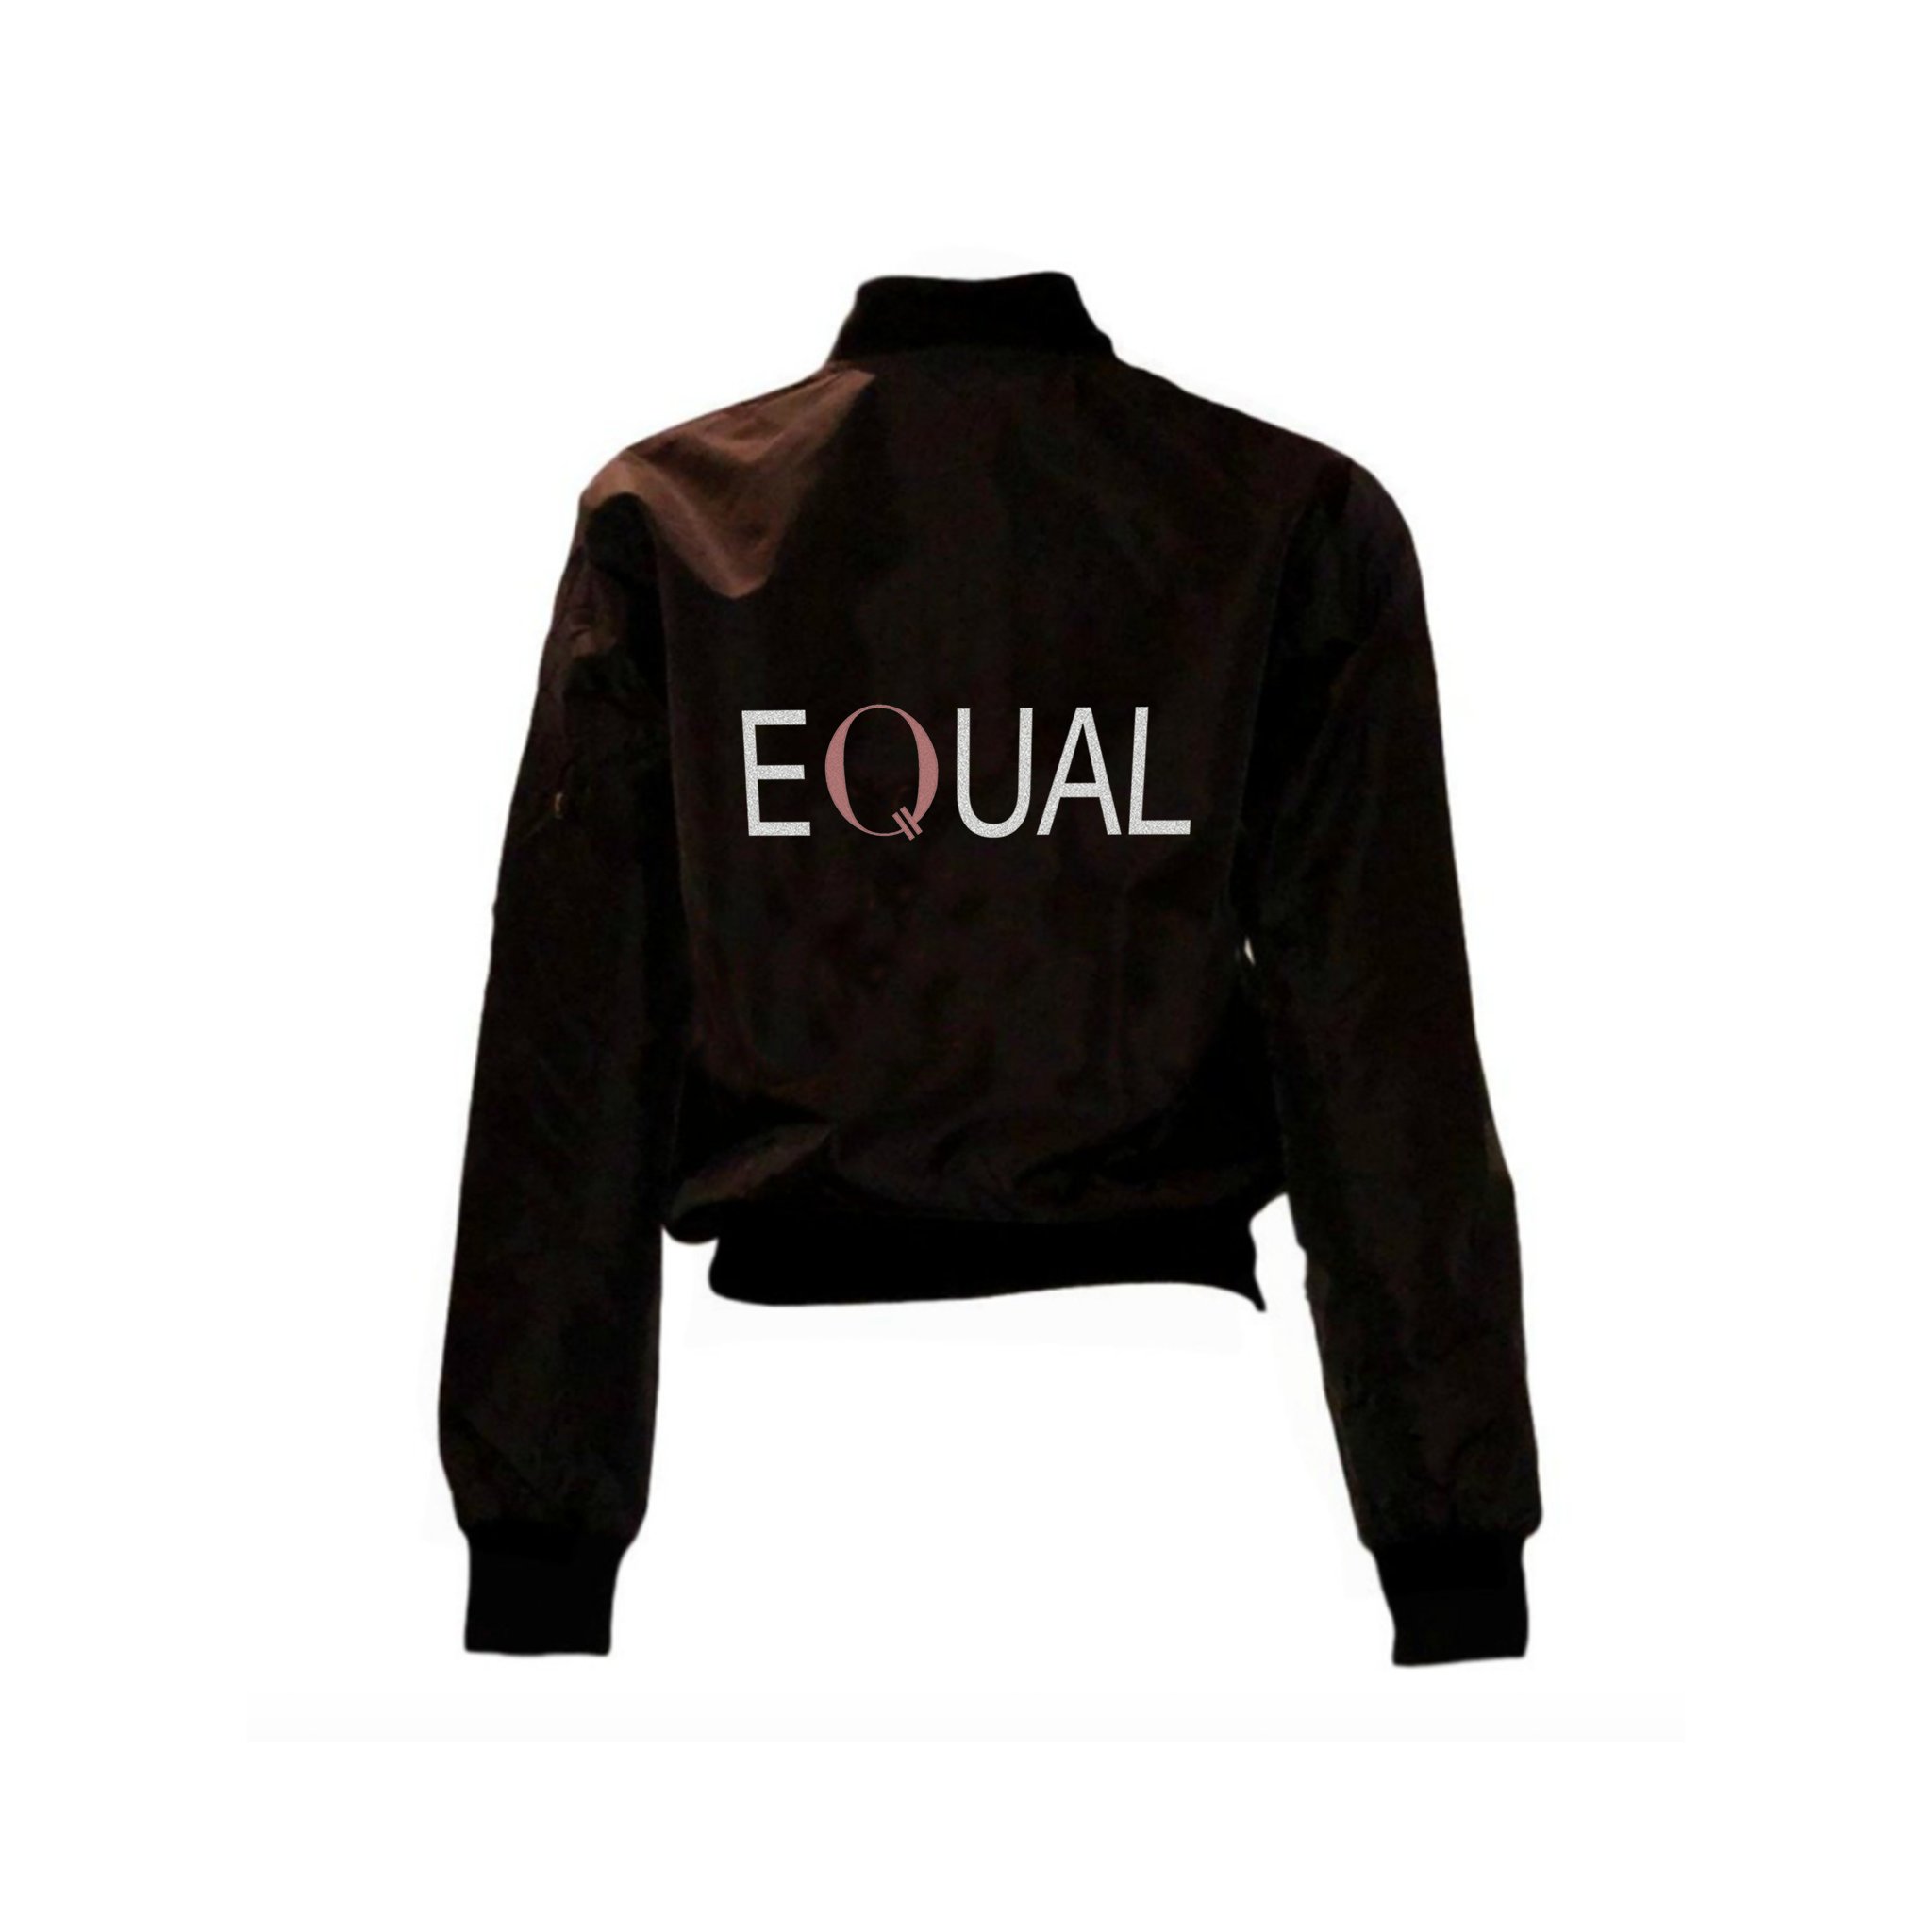 Equal Bomber Jacket